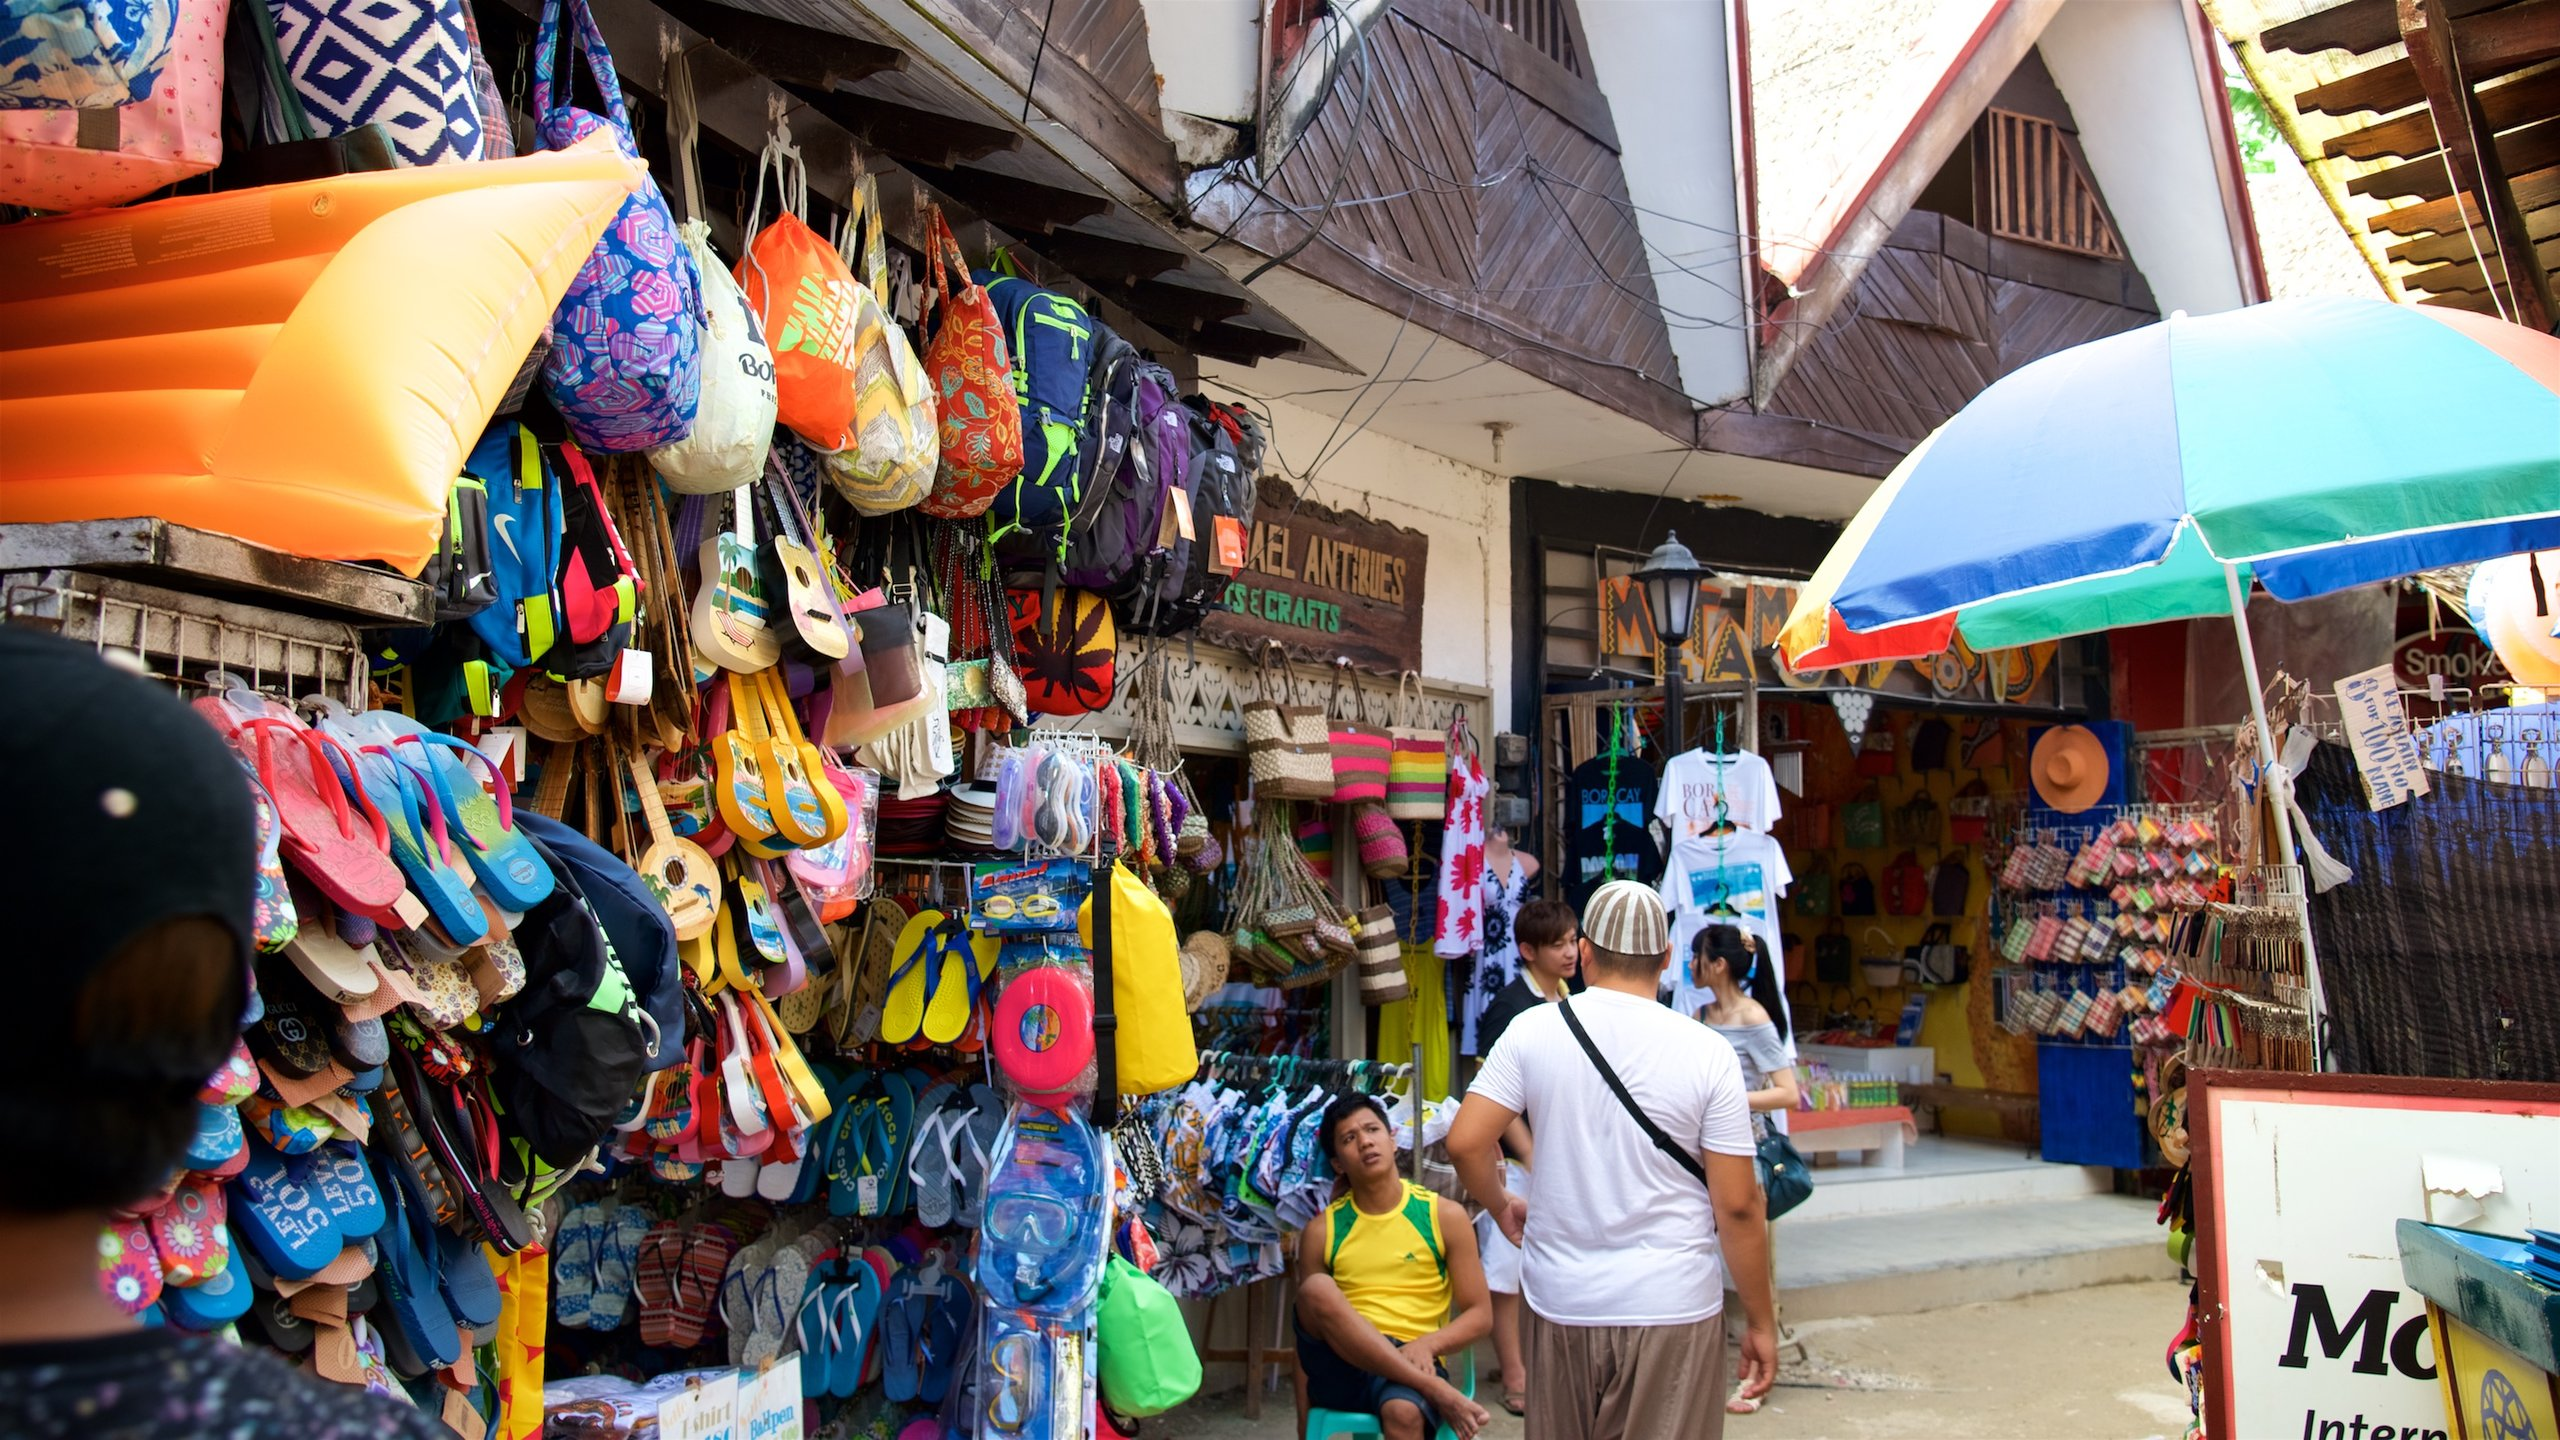 Browse the eclectic range of items displayed in the quaint wooden market stalls and visit a charming park and a climbing arena.